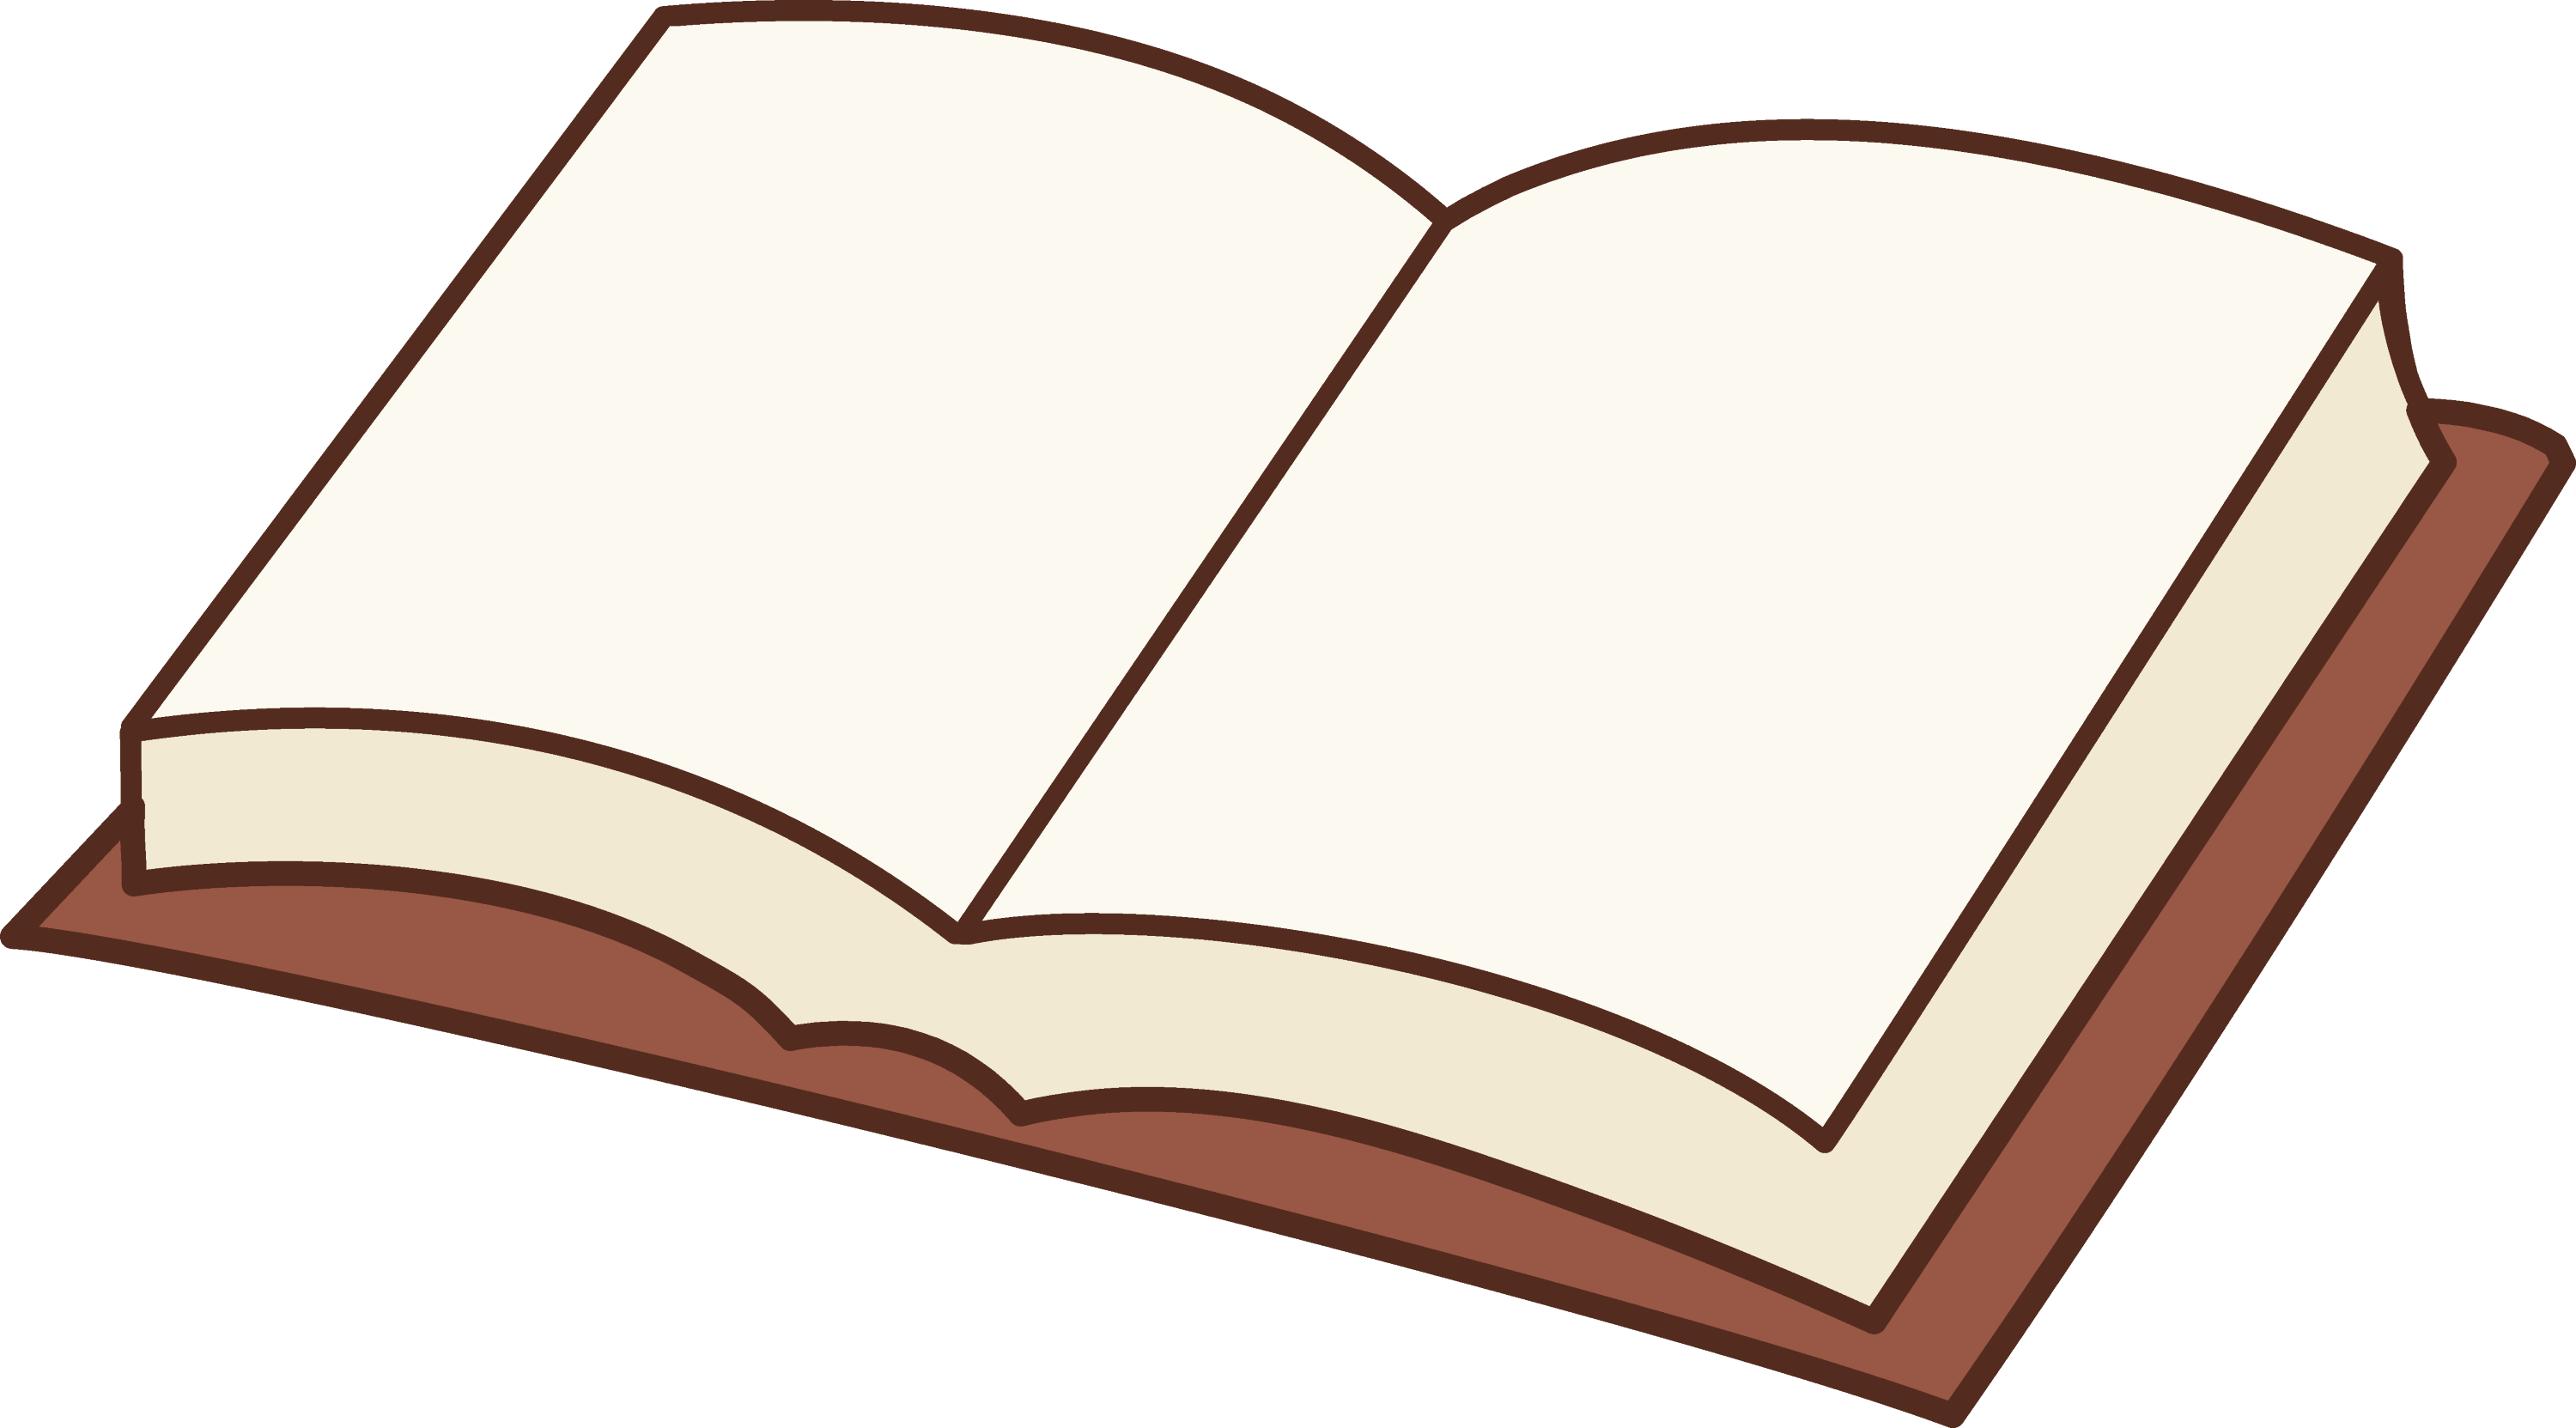 clipart pictures of books - photo #16